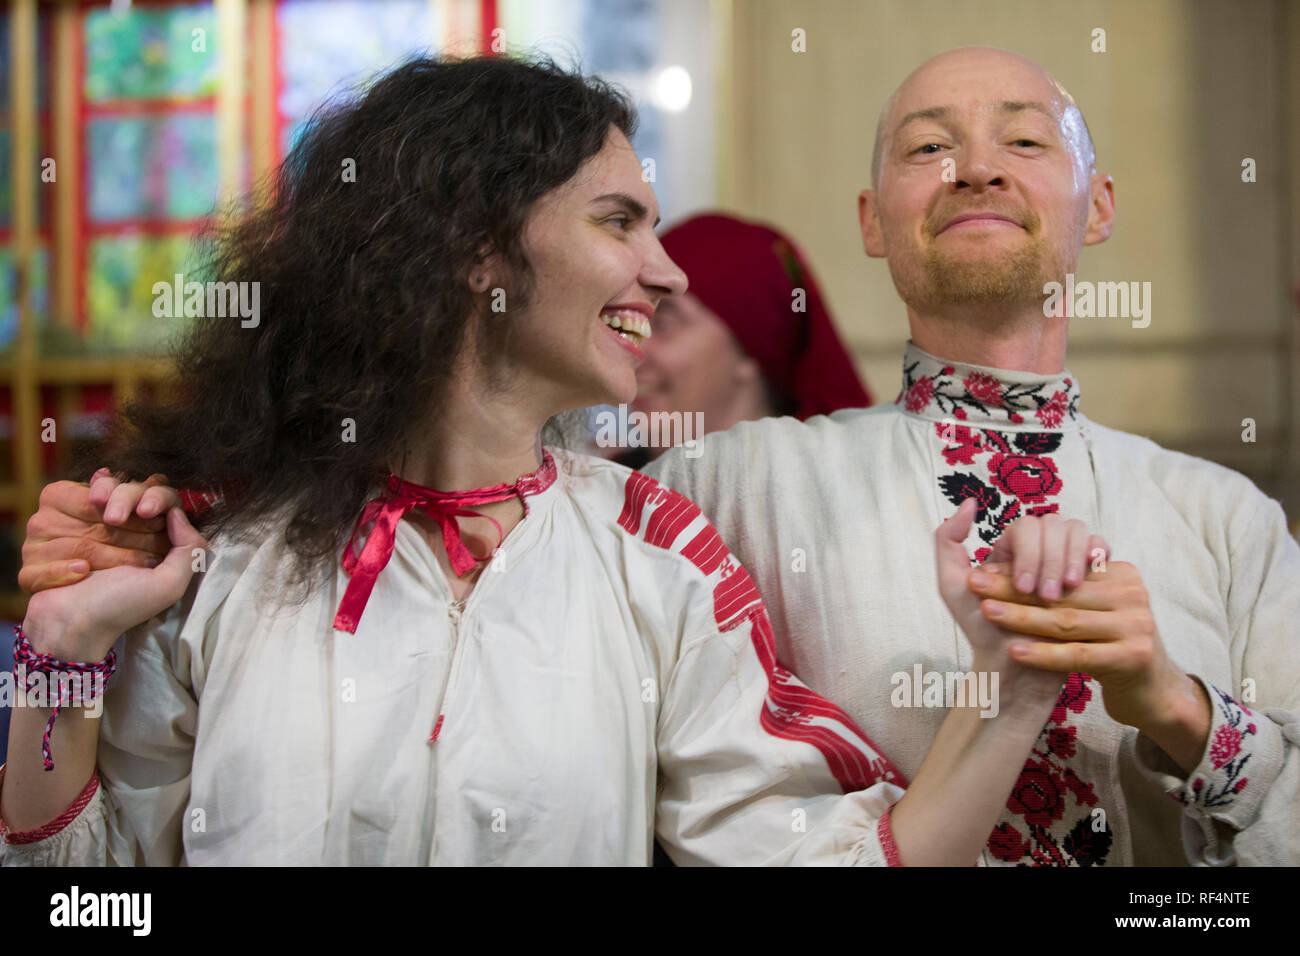 Belarus, Gomel, November 24, 2018. Reconstruction of an ethnic old Belarusian wedding.Belarusian Slavic national dances. A man and a woman in embroide - Stock Image